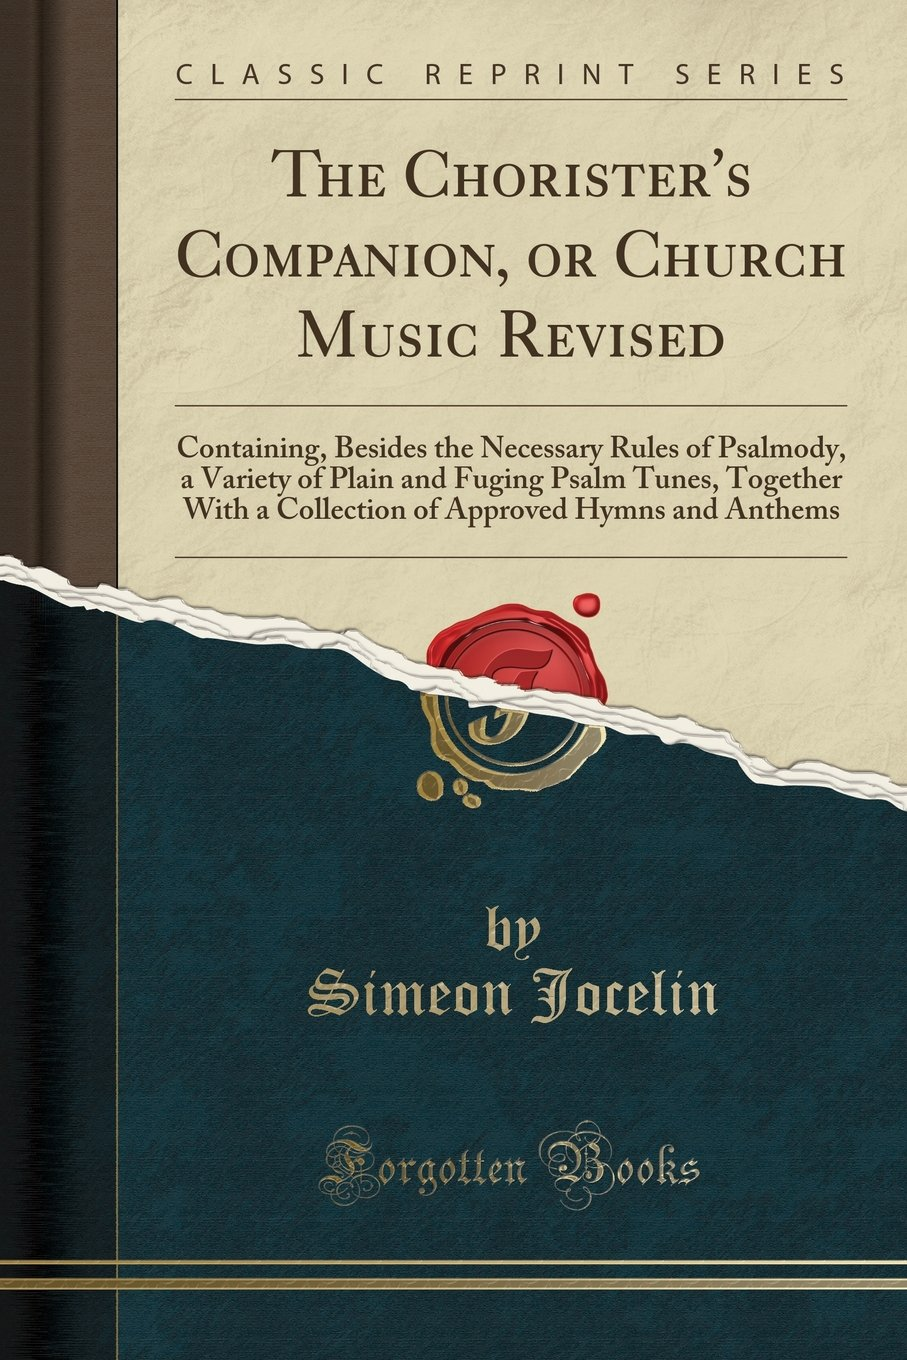 Download The Chorister's Companion, or Church Music Revised: Containing, Besides the Necessary Rules of Psalmody, a Variety of Plain and Fuging Psalm Tunes, ... Approved Hymns and Anthems (Classic Reprint) PDF